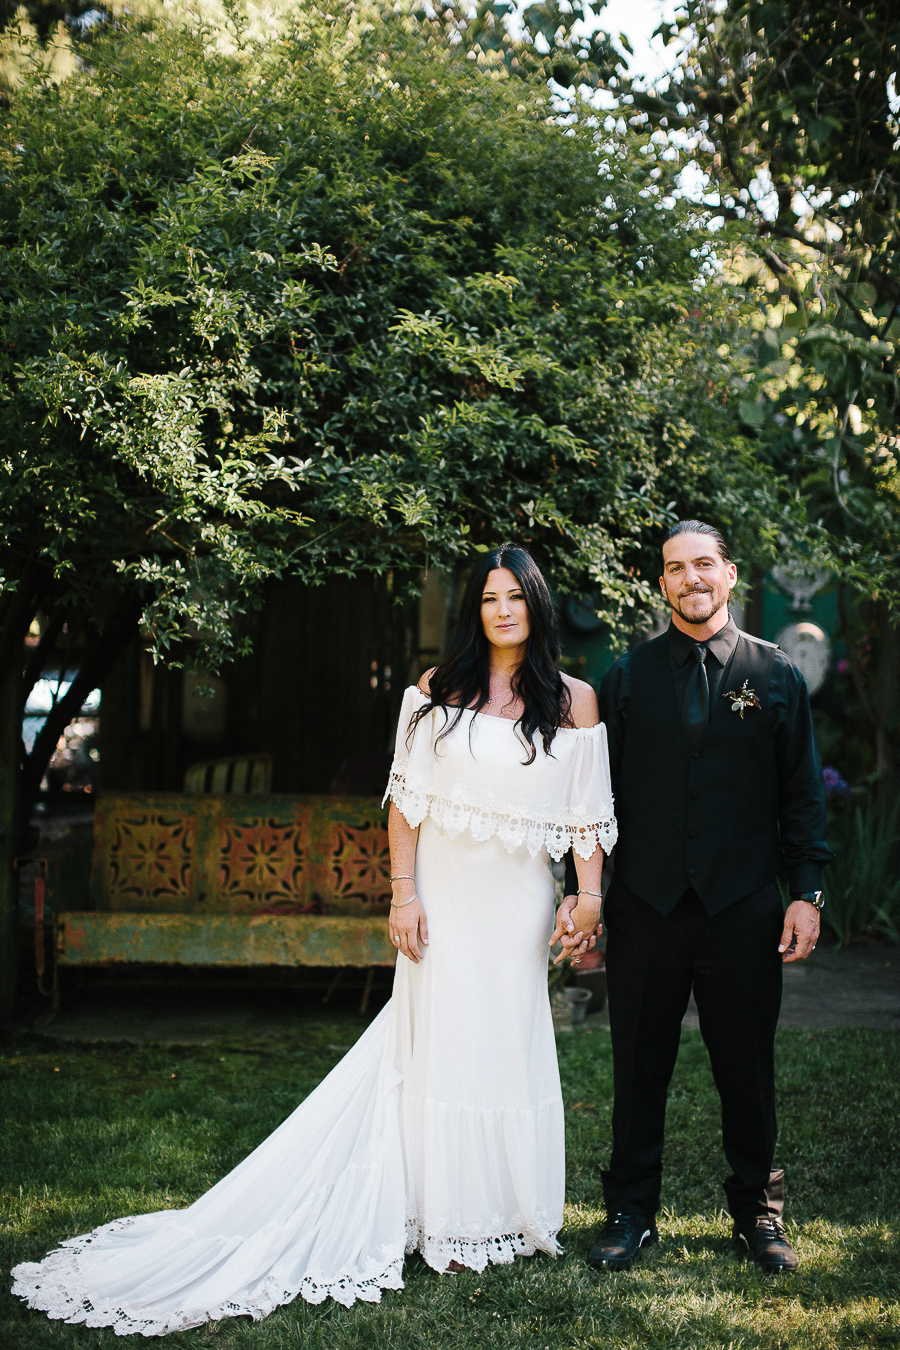 Santa-Cruz-Wedding-Abi-Q-Photography-Boho-backyard-143.jpg